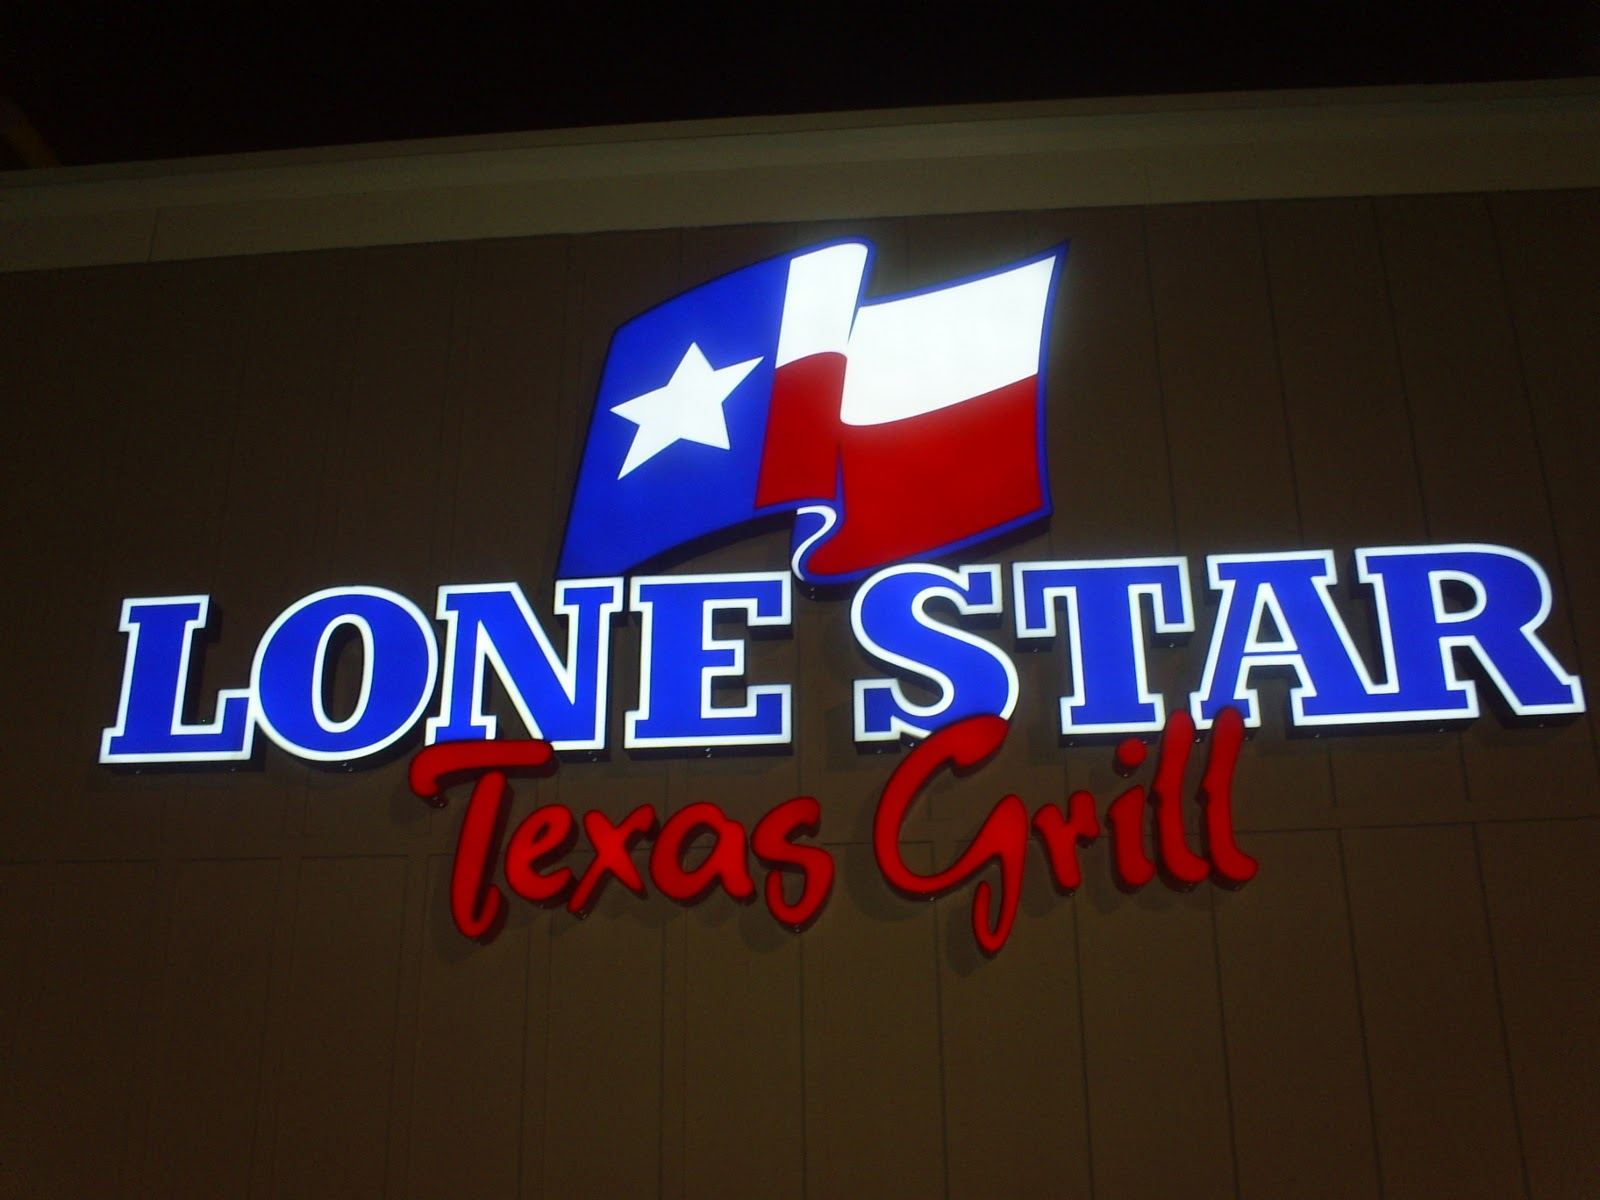 Texas stars coupons